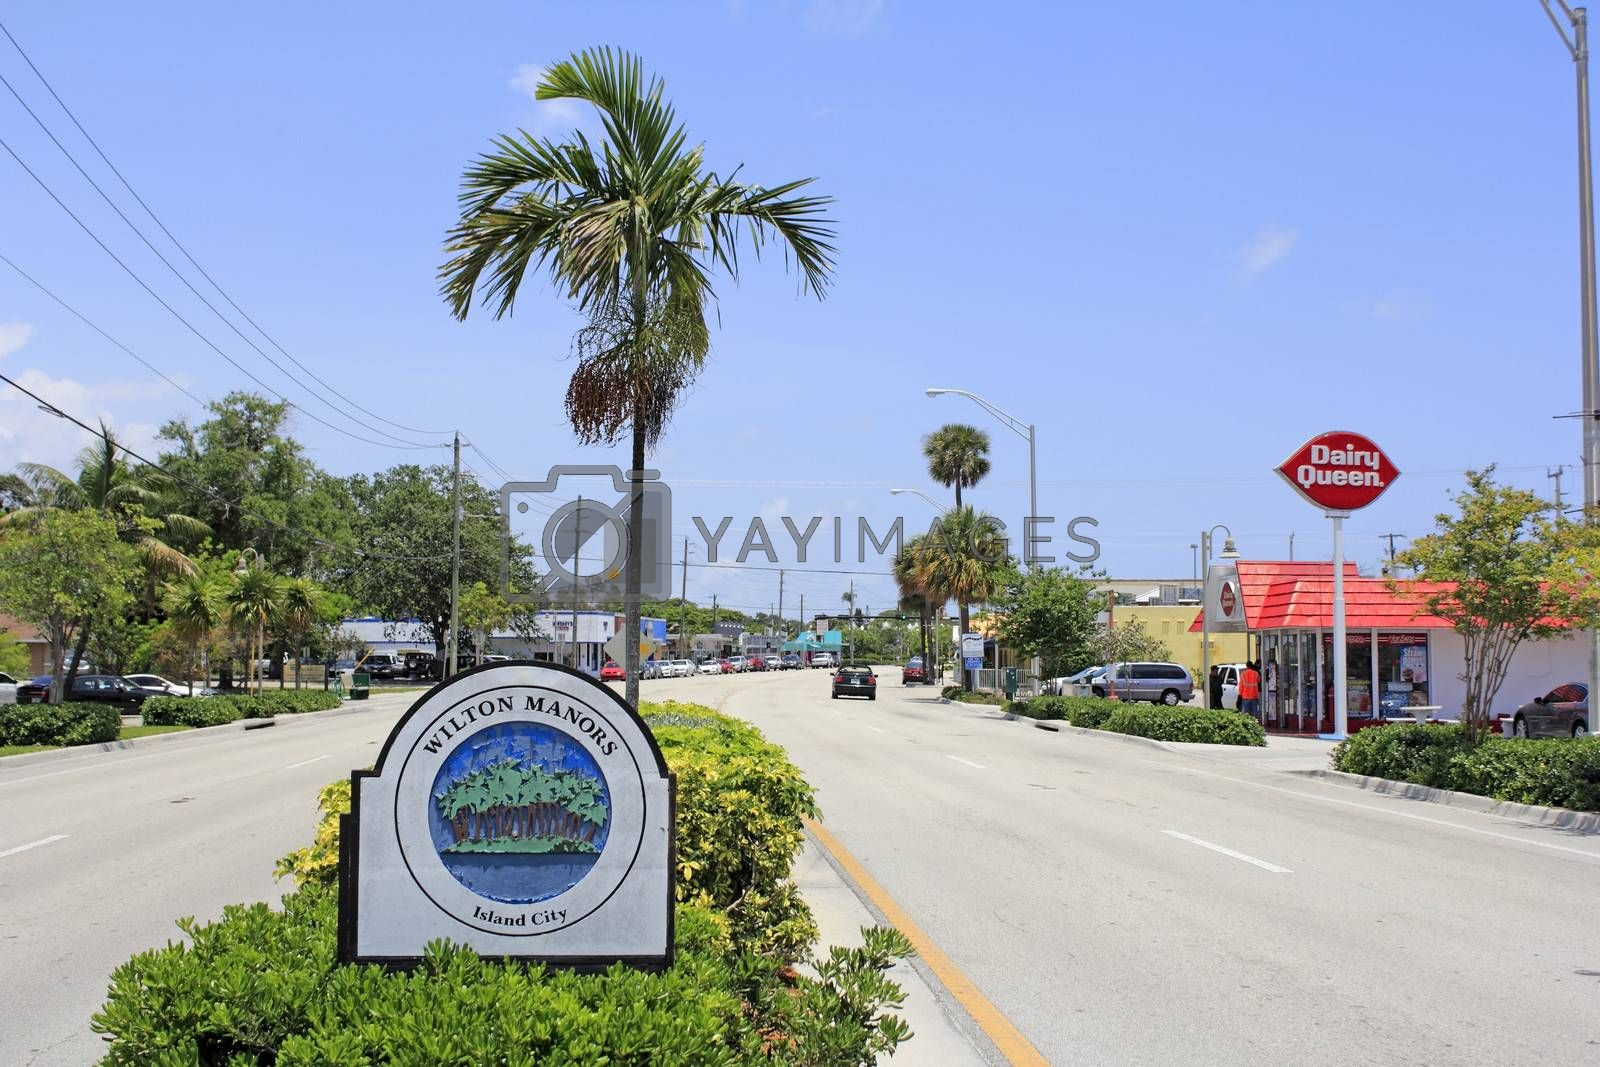 WILTON MANORS, FLORIDA - MAY 11, 2013: Sign that says Wilton Manors and Island City with palm trees on an island graphic in the median of Wilton Drive in this urban city of 11,9995 in 2012.